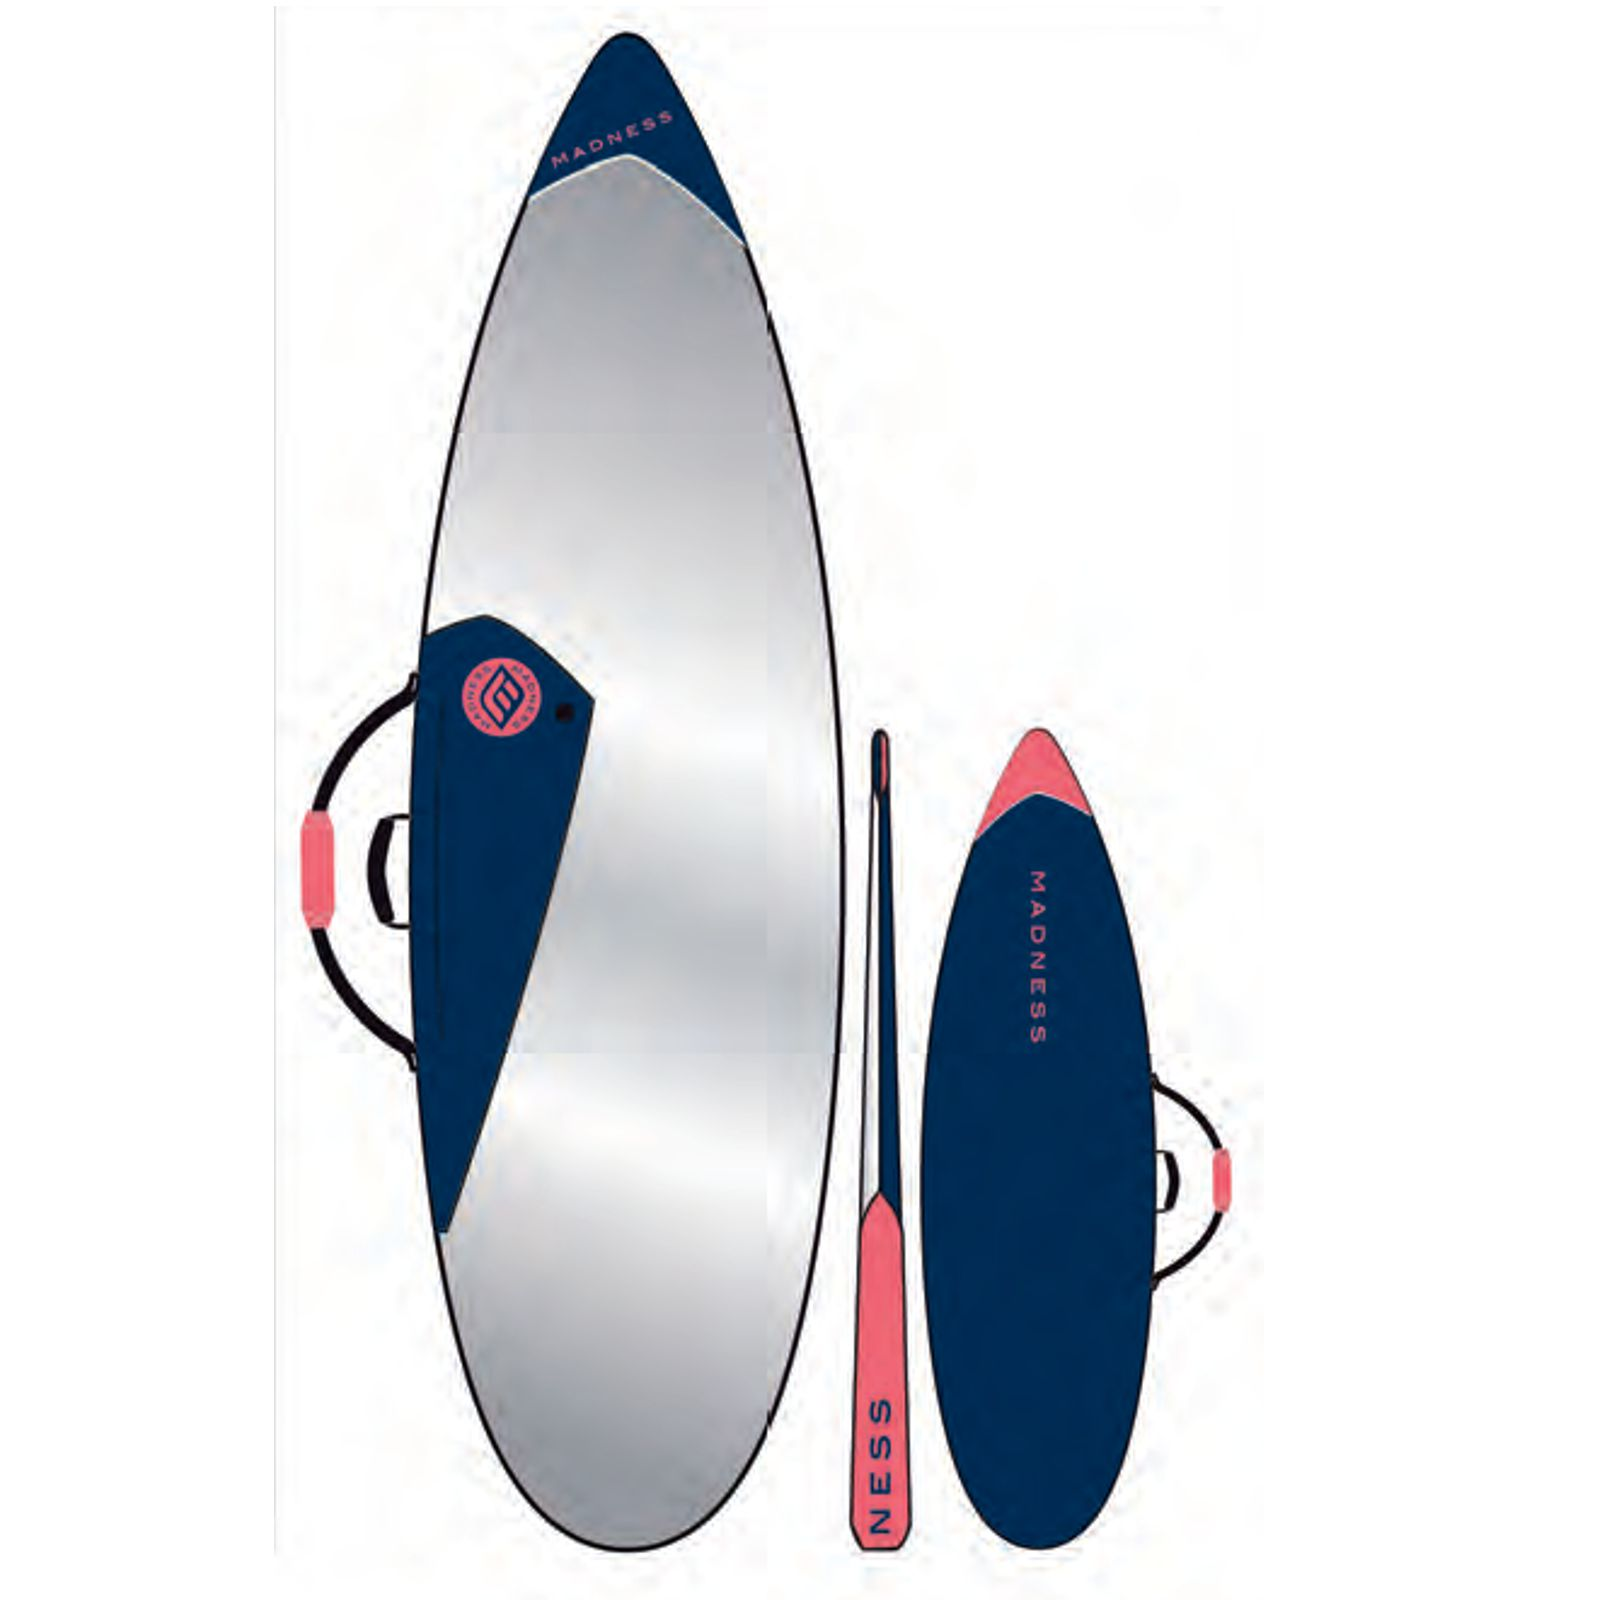 MADNESS Boardbag PE 6.0 Shortboard Blau Rot